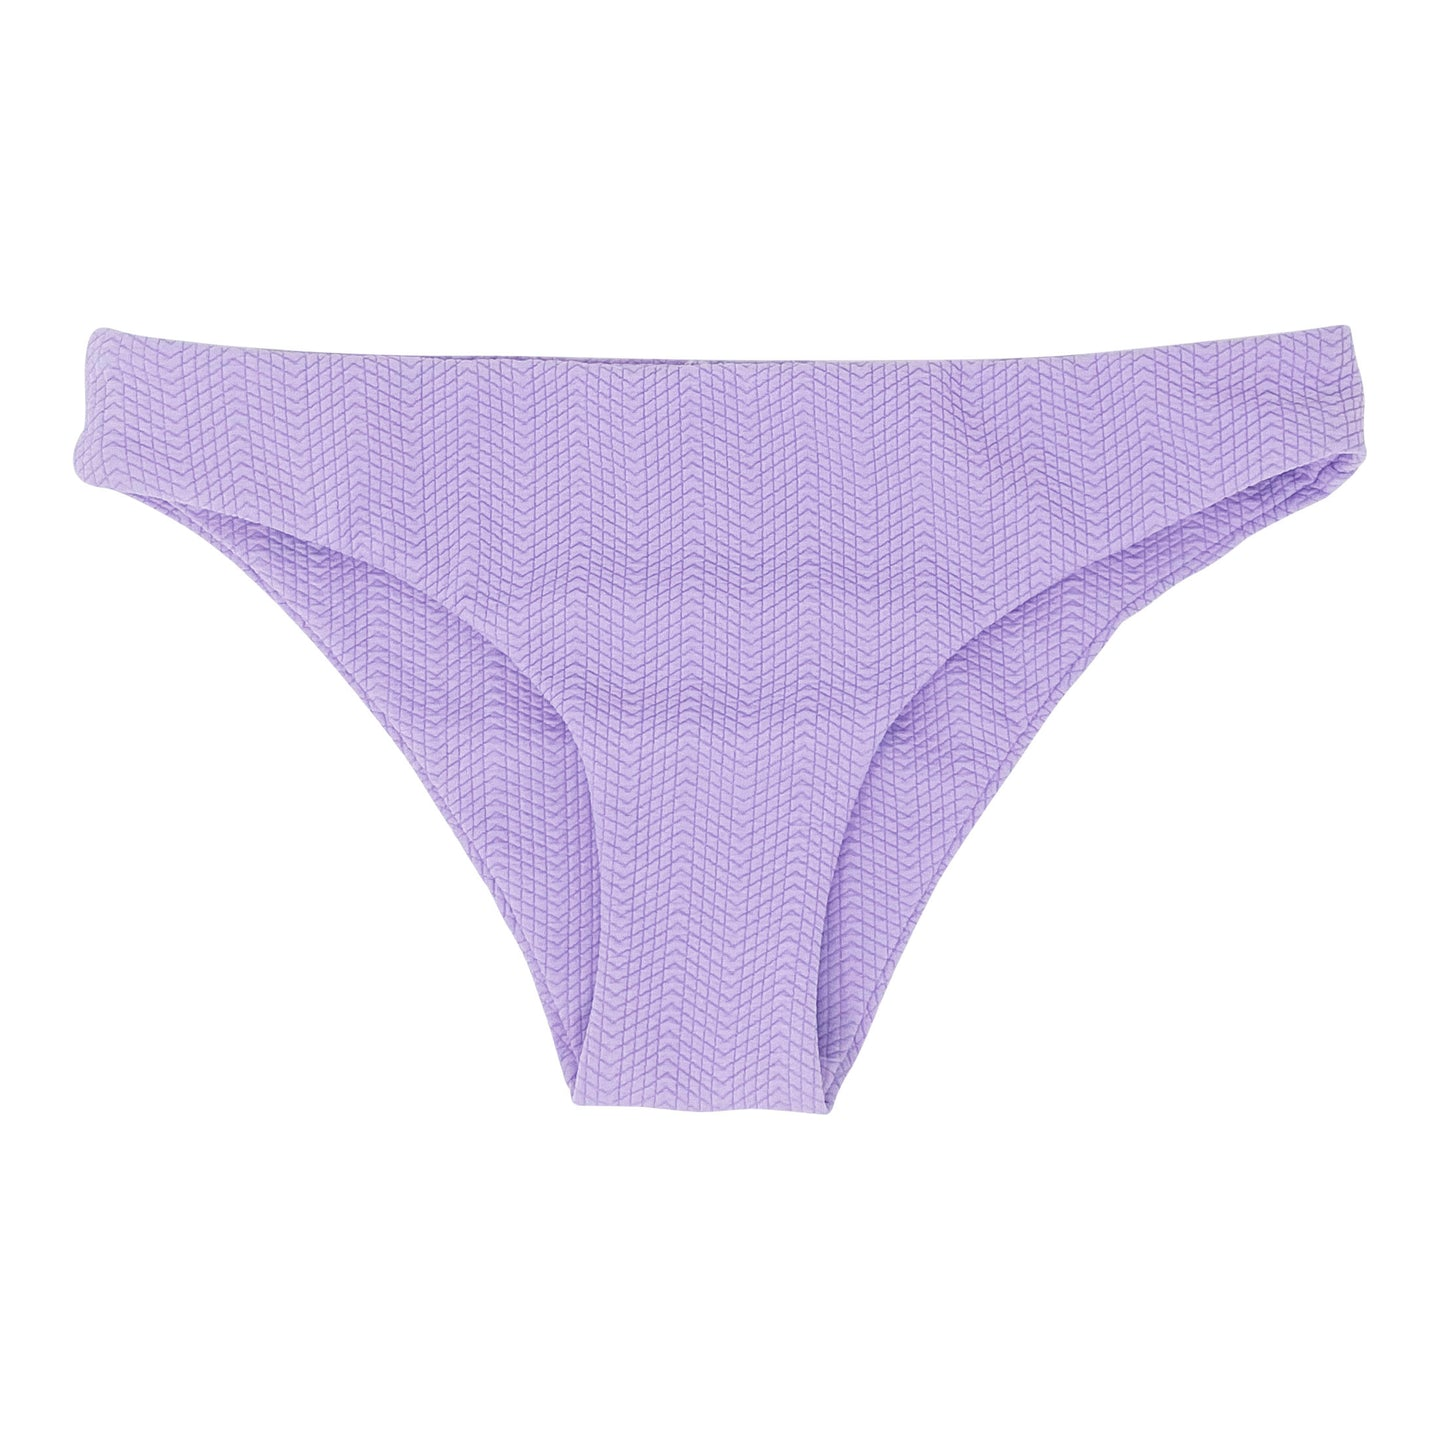 Greyson womens bottom in Lavender Texture